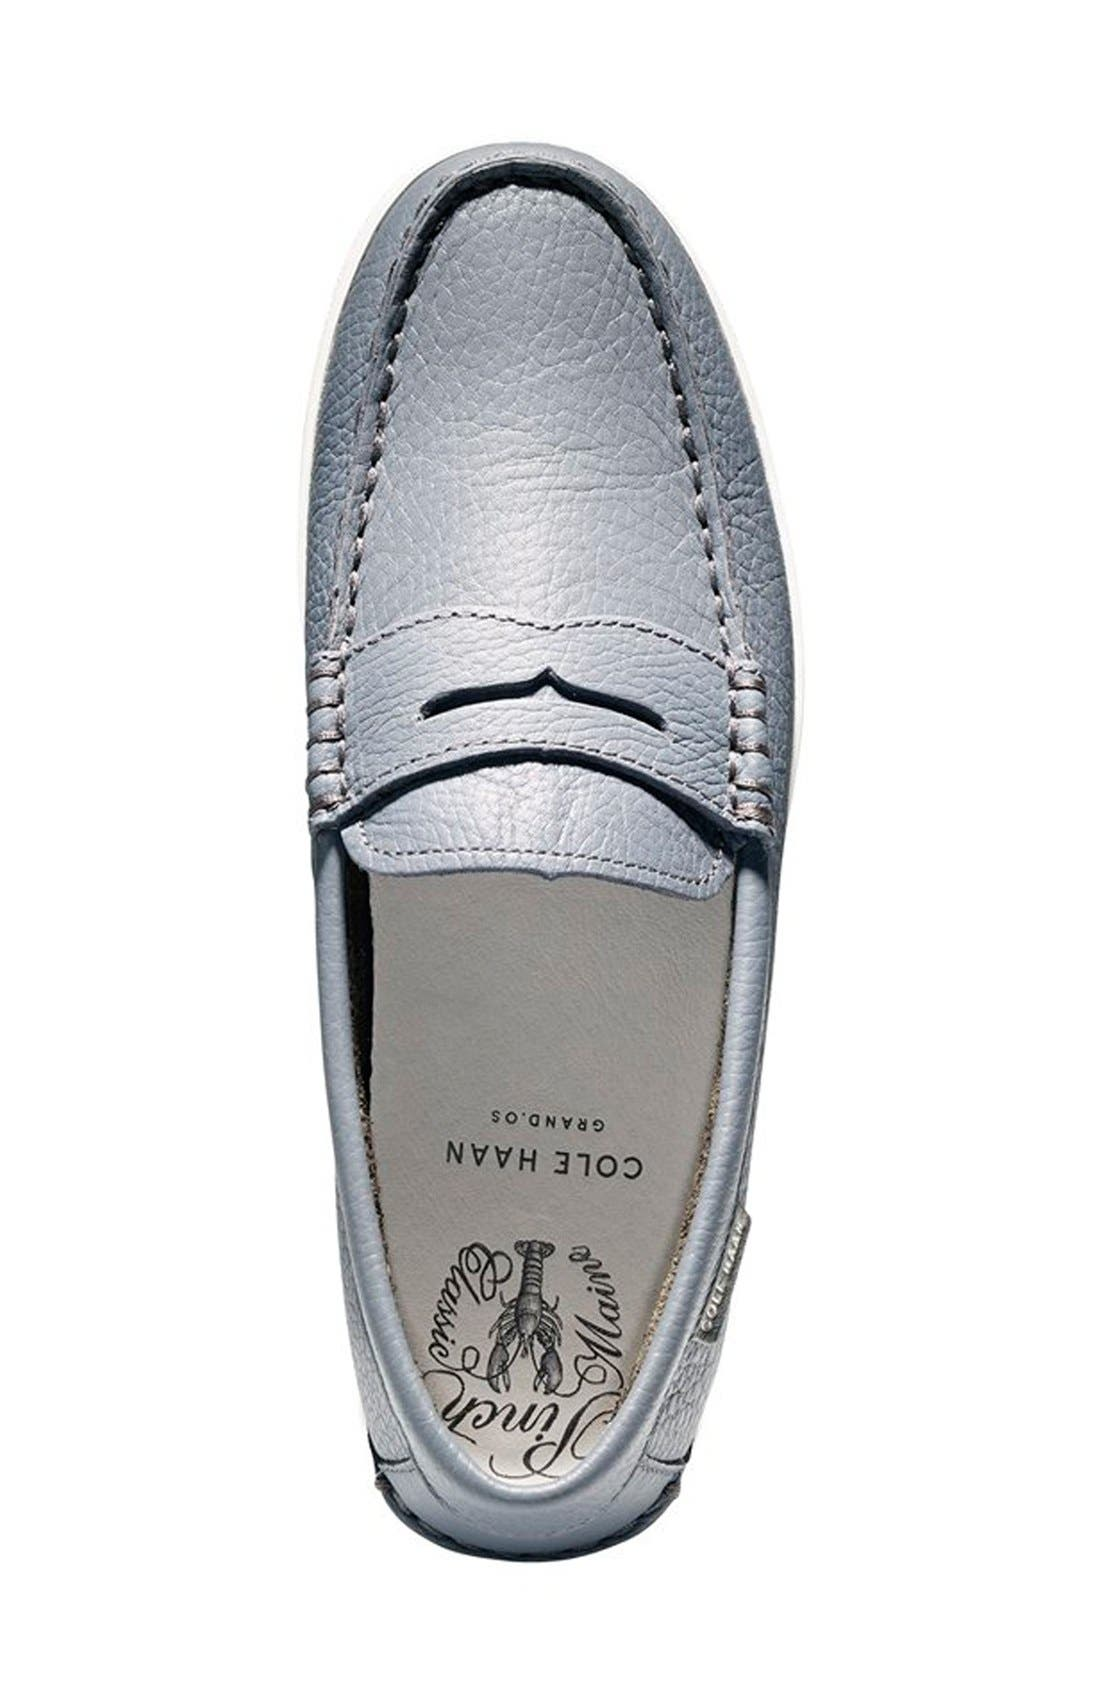 'Pinch' Penny Loafer,                             Alternate thumbnail 4, color,                             GREY LEATHER/ WHITE